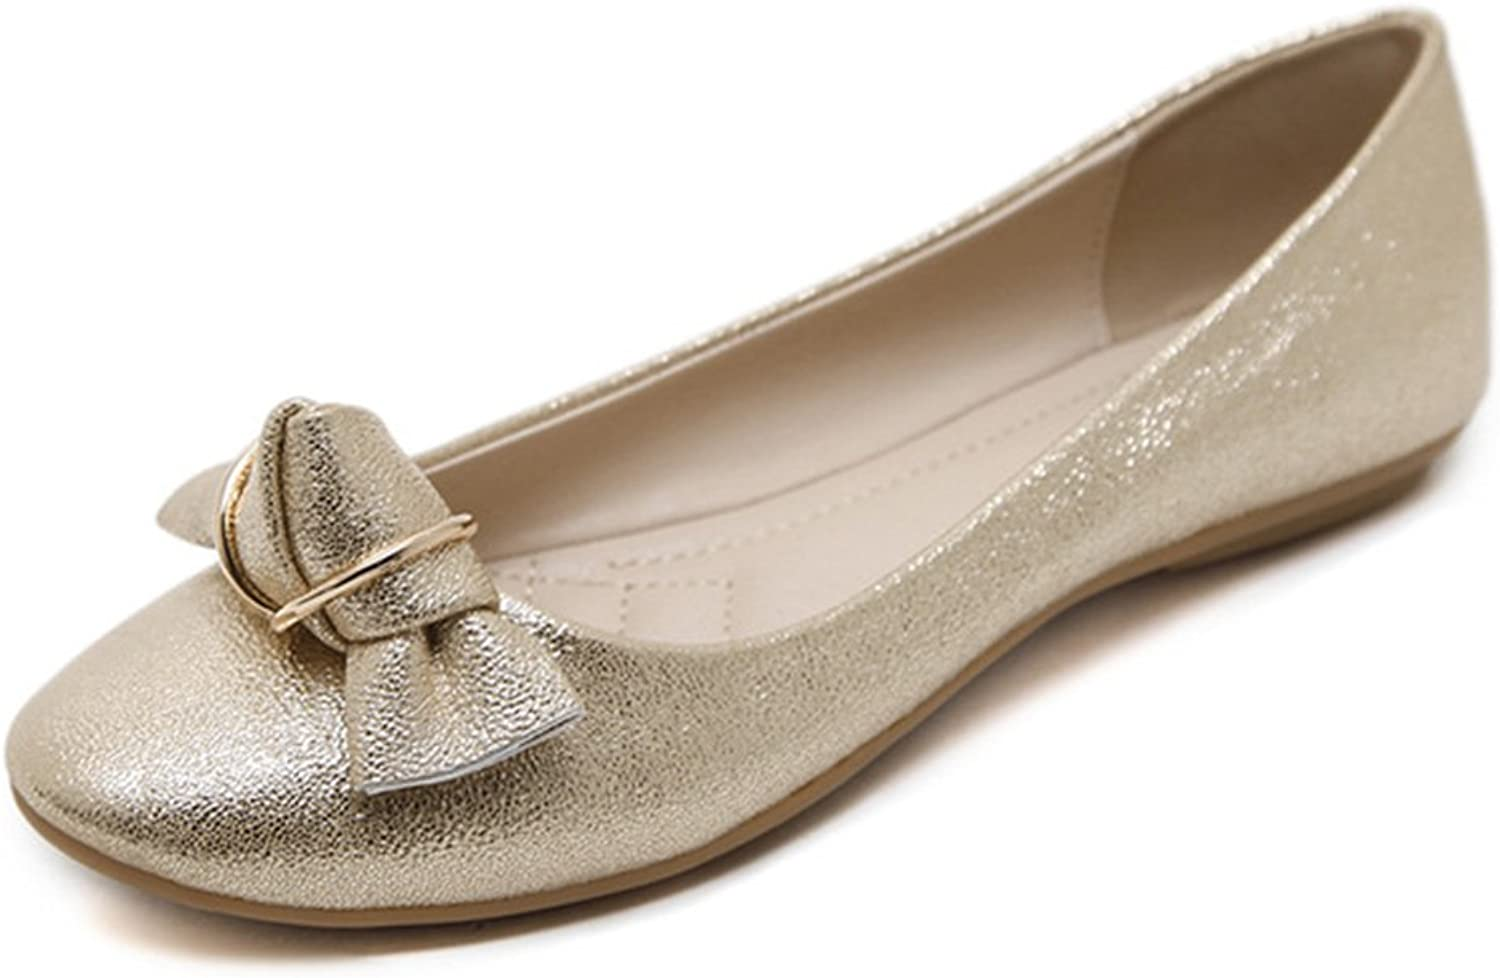 Women gold bluee Ballet Flats, Bowknot Metal Ring Pointed Toe Dressy shoes